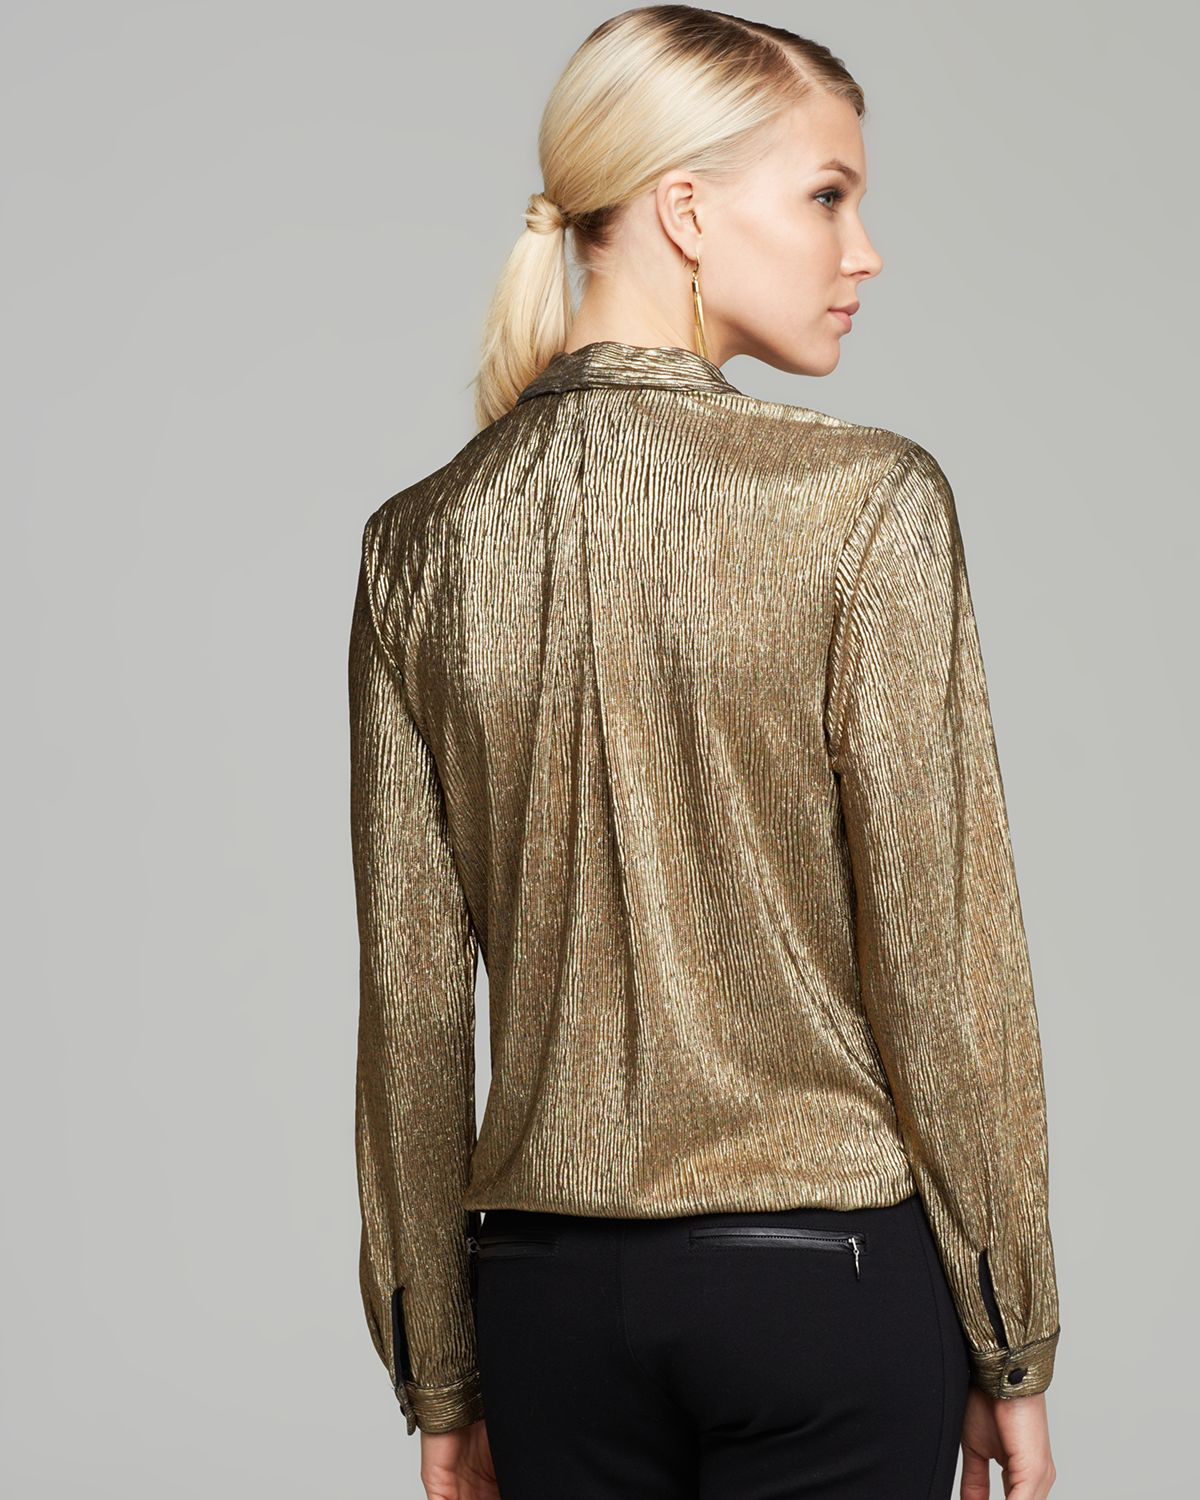 Lyst Sam Amp Lavi Blouse Wynter Metallic In Metallic